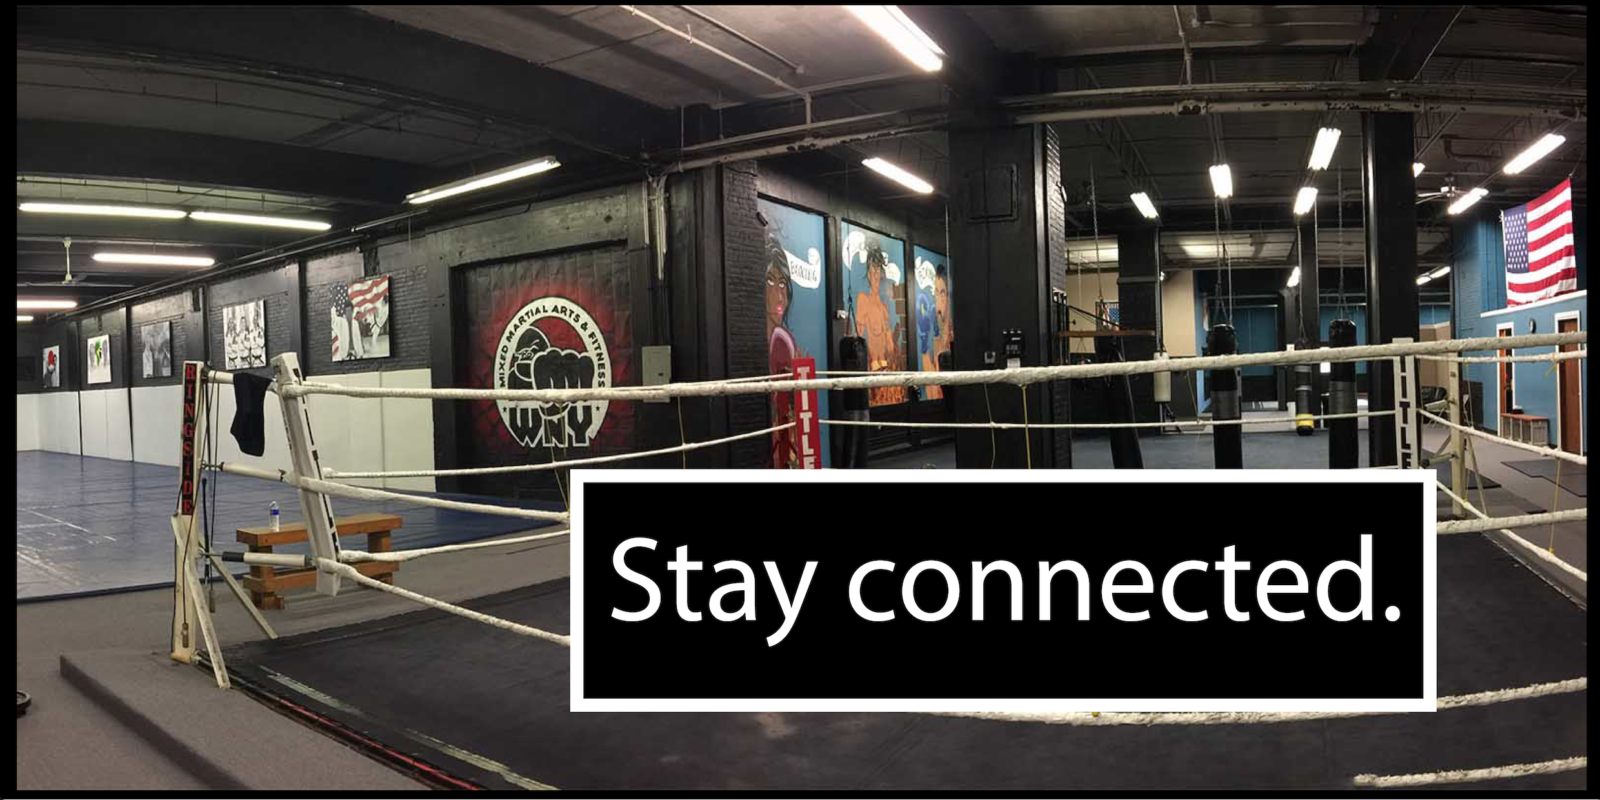 Call us today to become part of the WNY MMA & Fitness community.